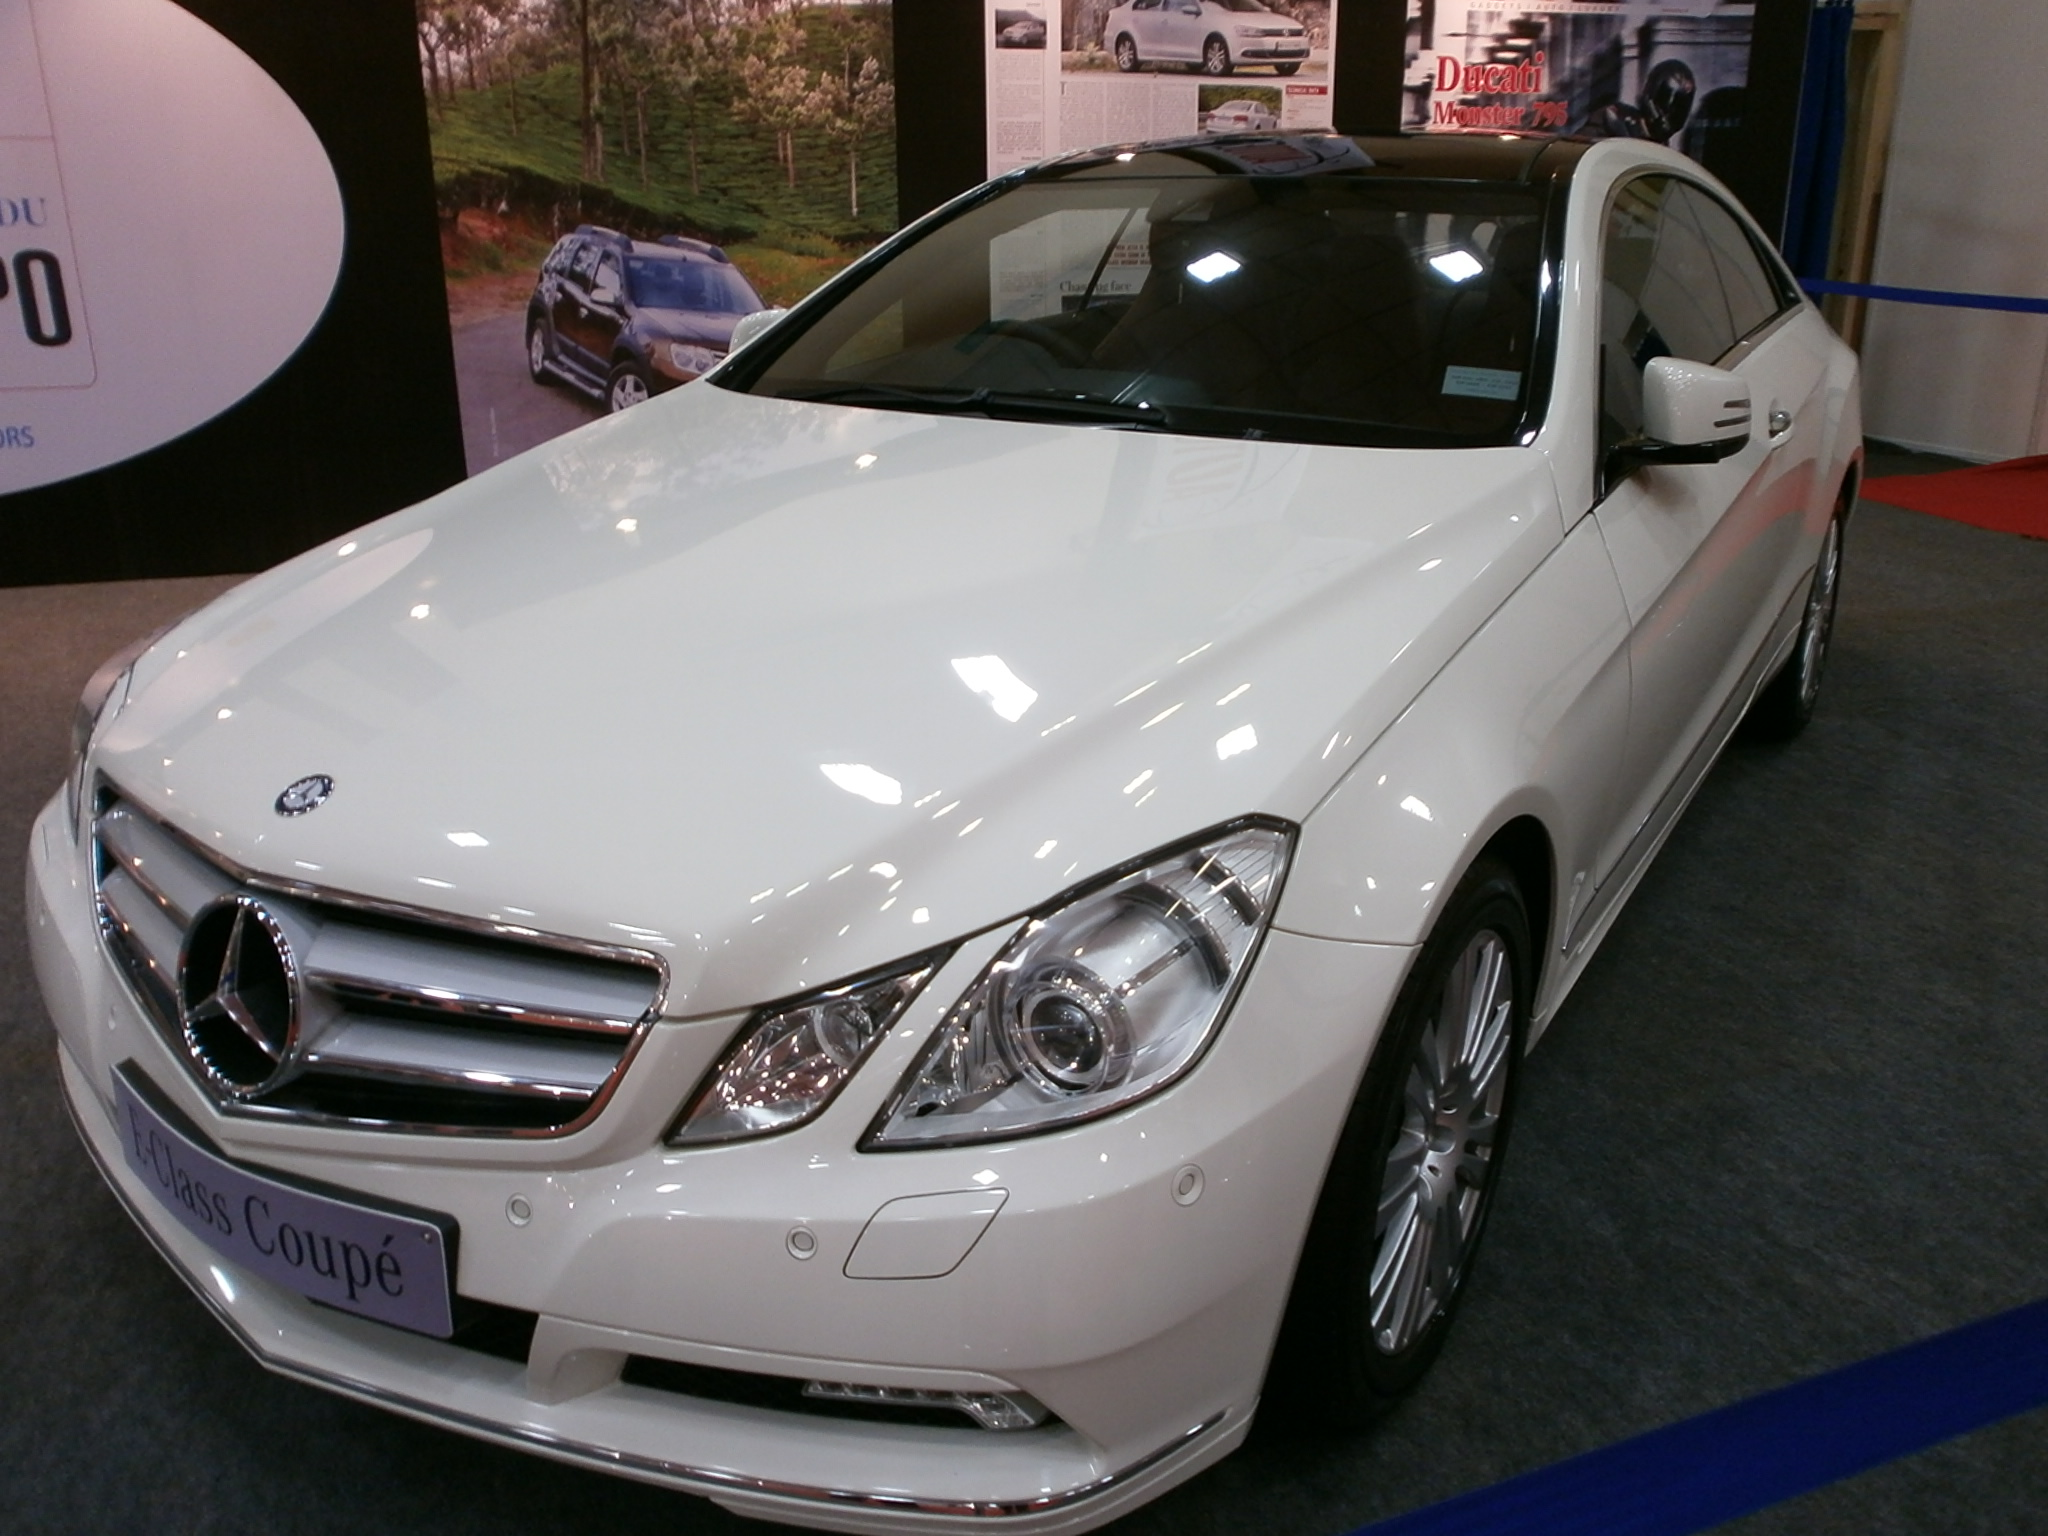 File:Mercedes-E-Class-Coupe.JPG - Wikimedia Commons